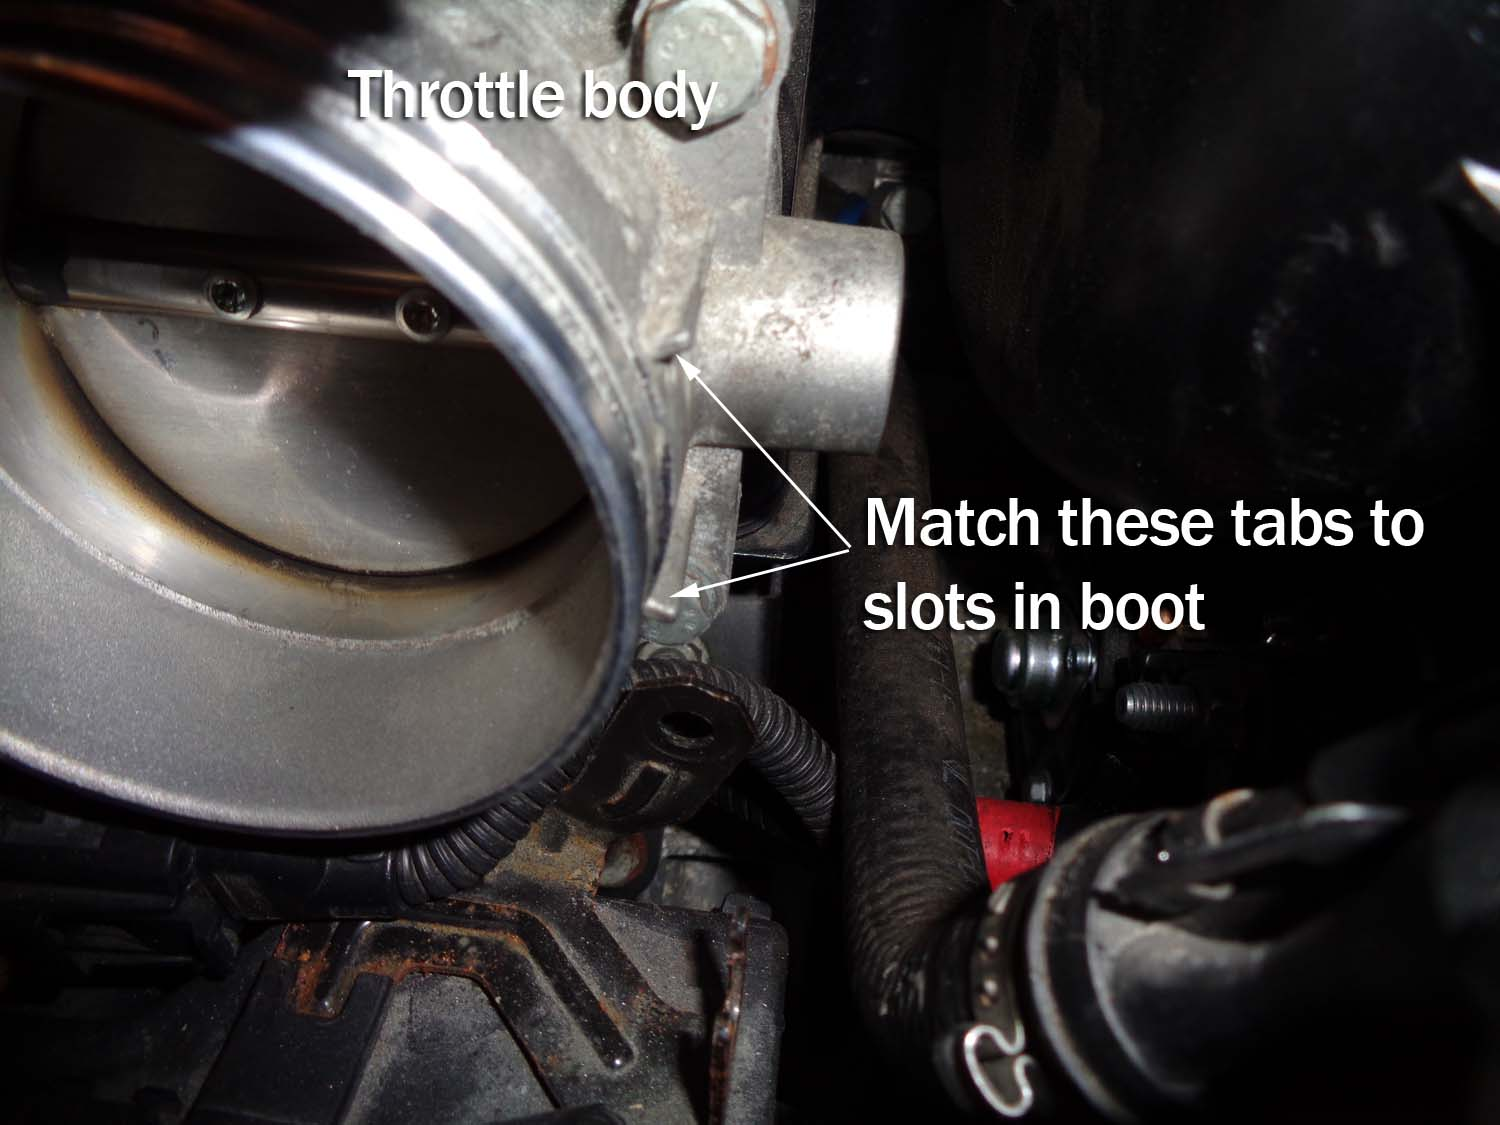 bmw e60 intake boot repair - match up the throttle body tabs